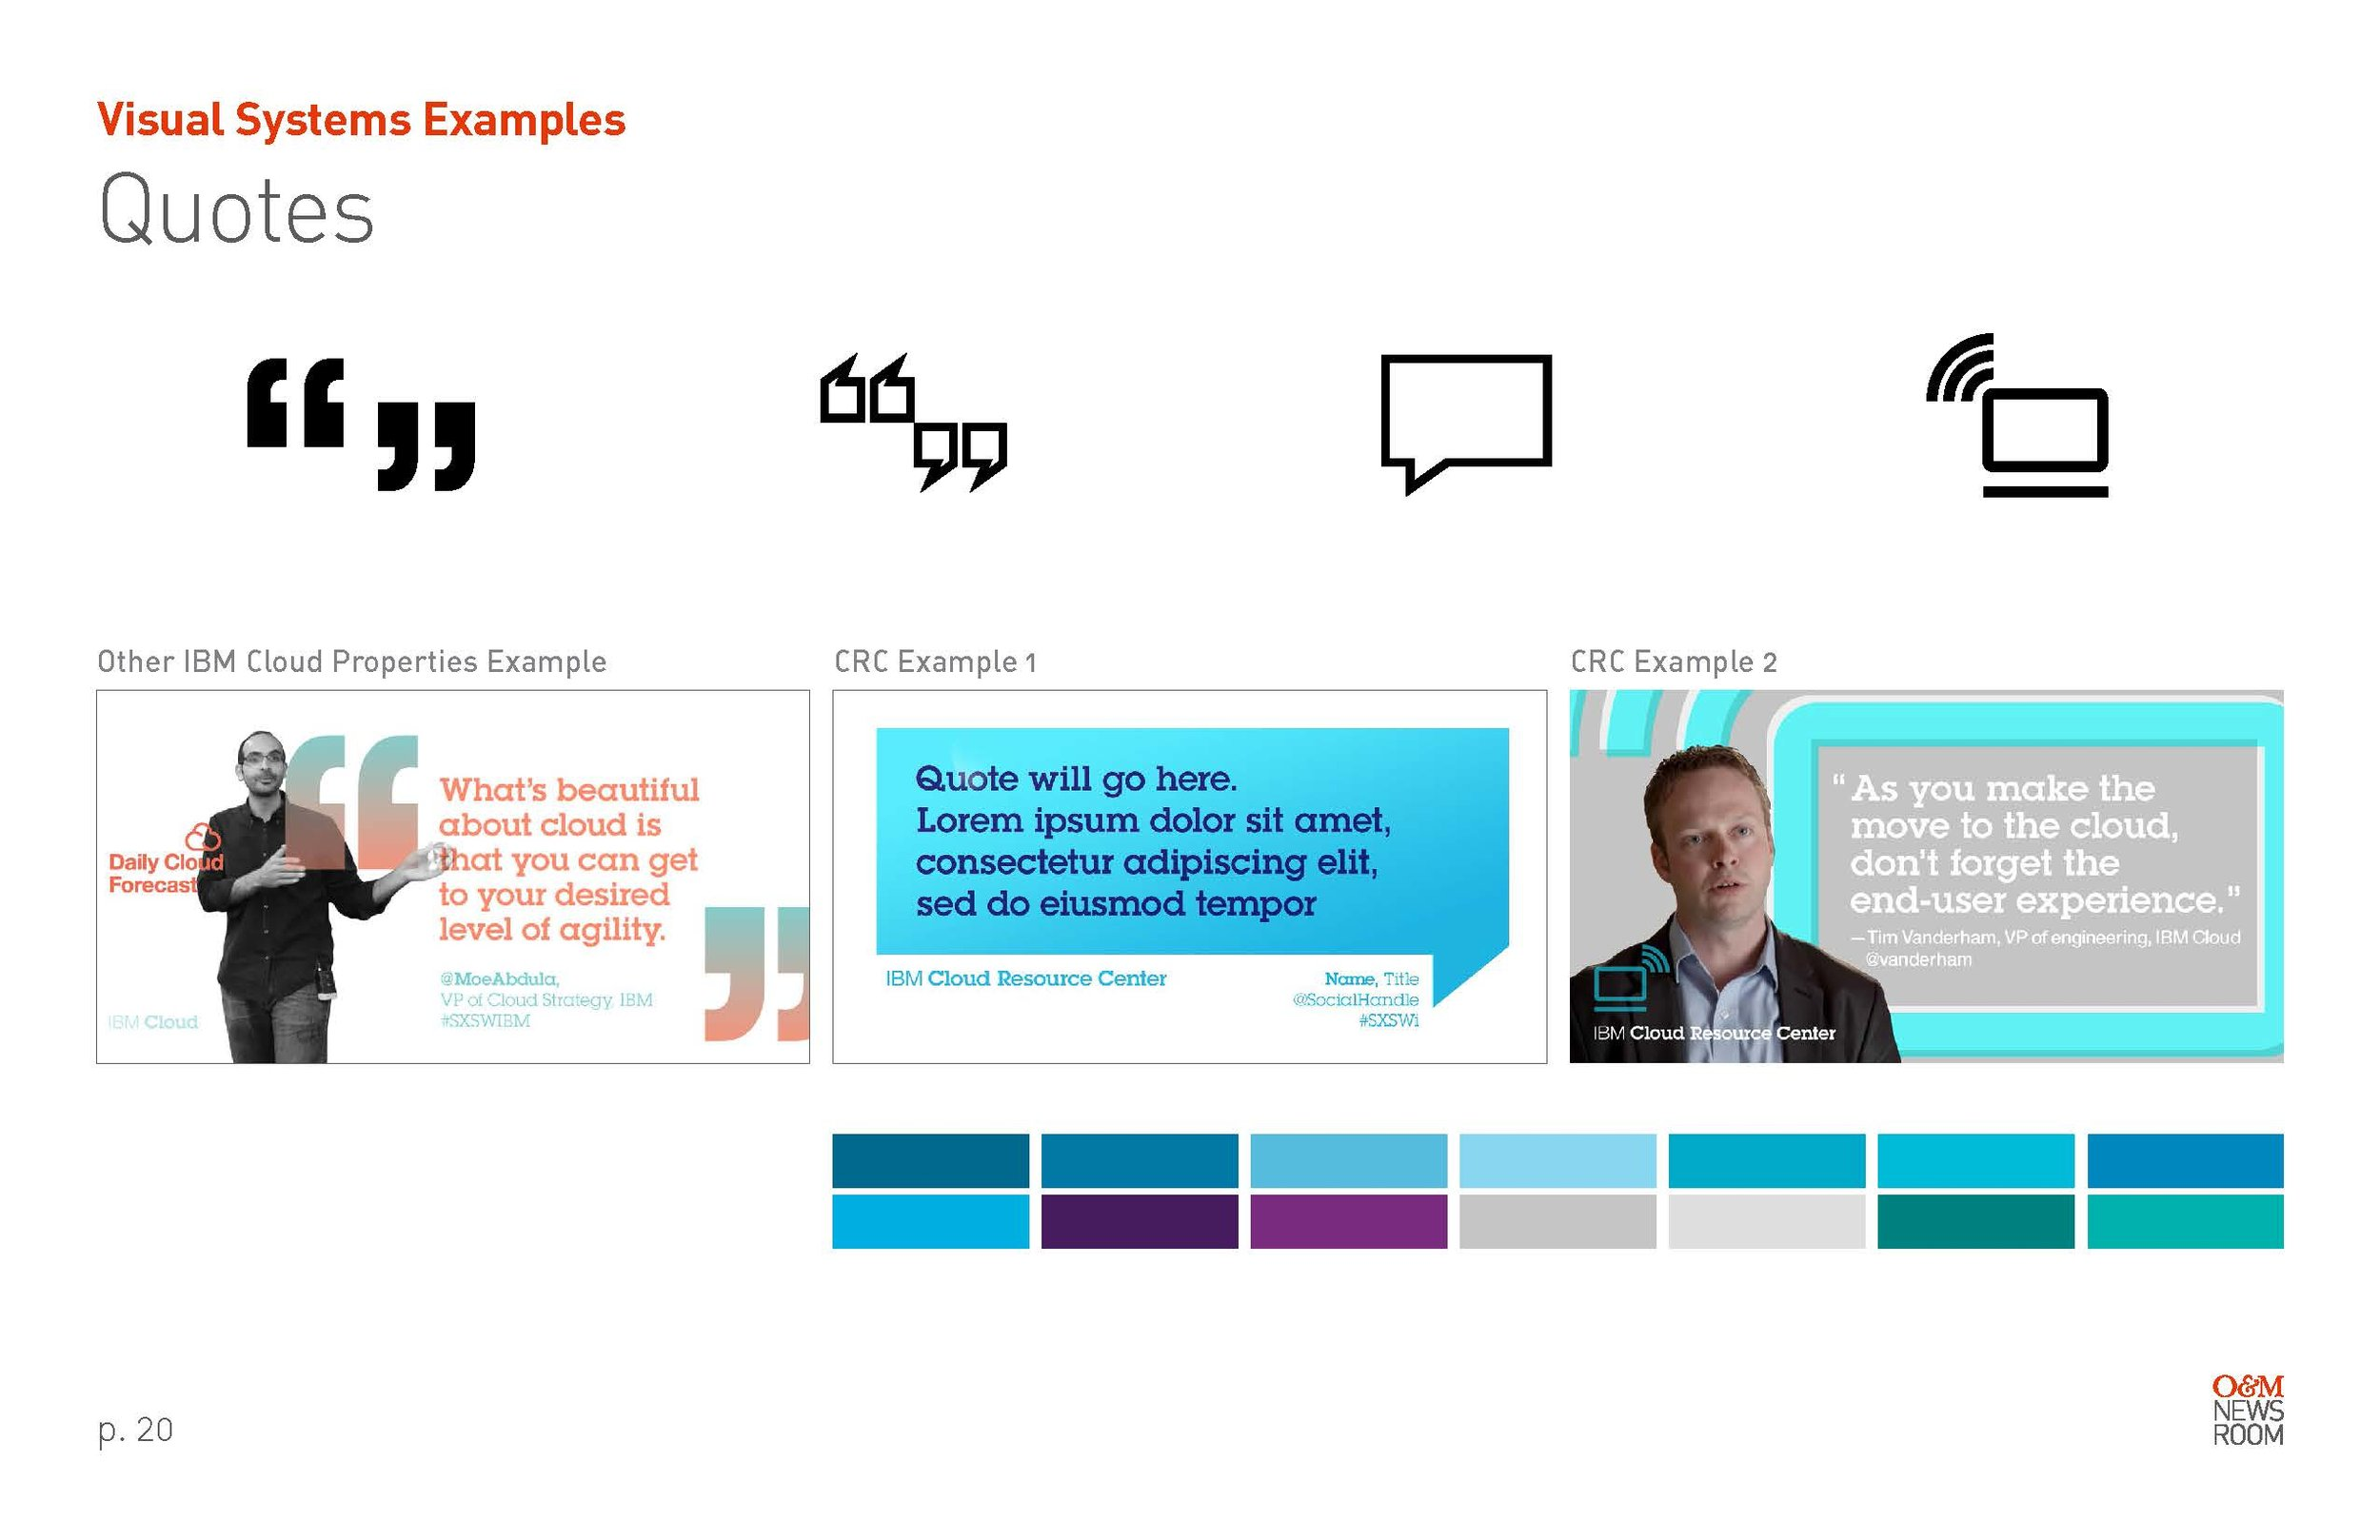 IBMNR_Cloud_Always_On_Social_Visual_Systems_Tone_of_Voice_042815_Page_20.jpg